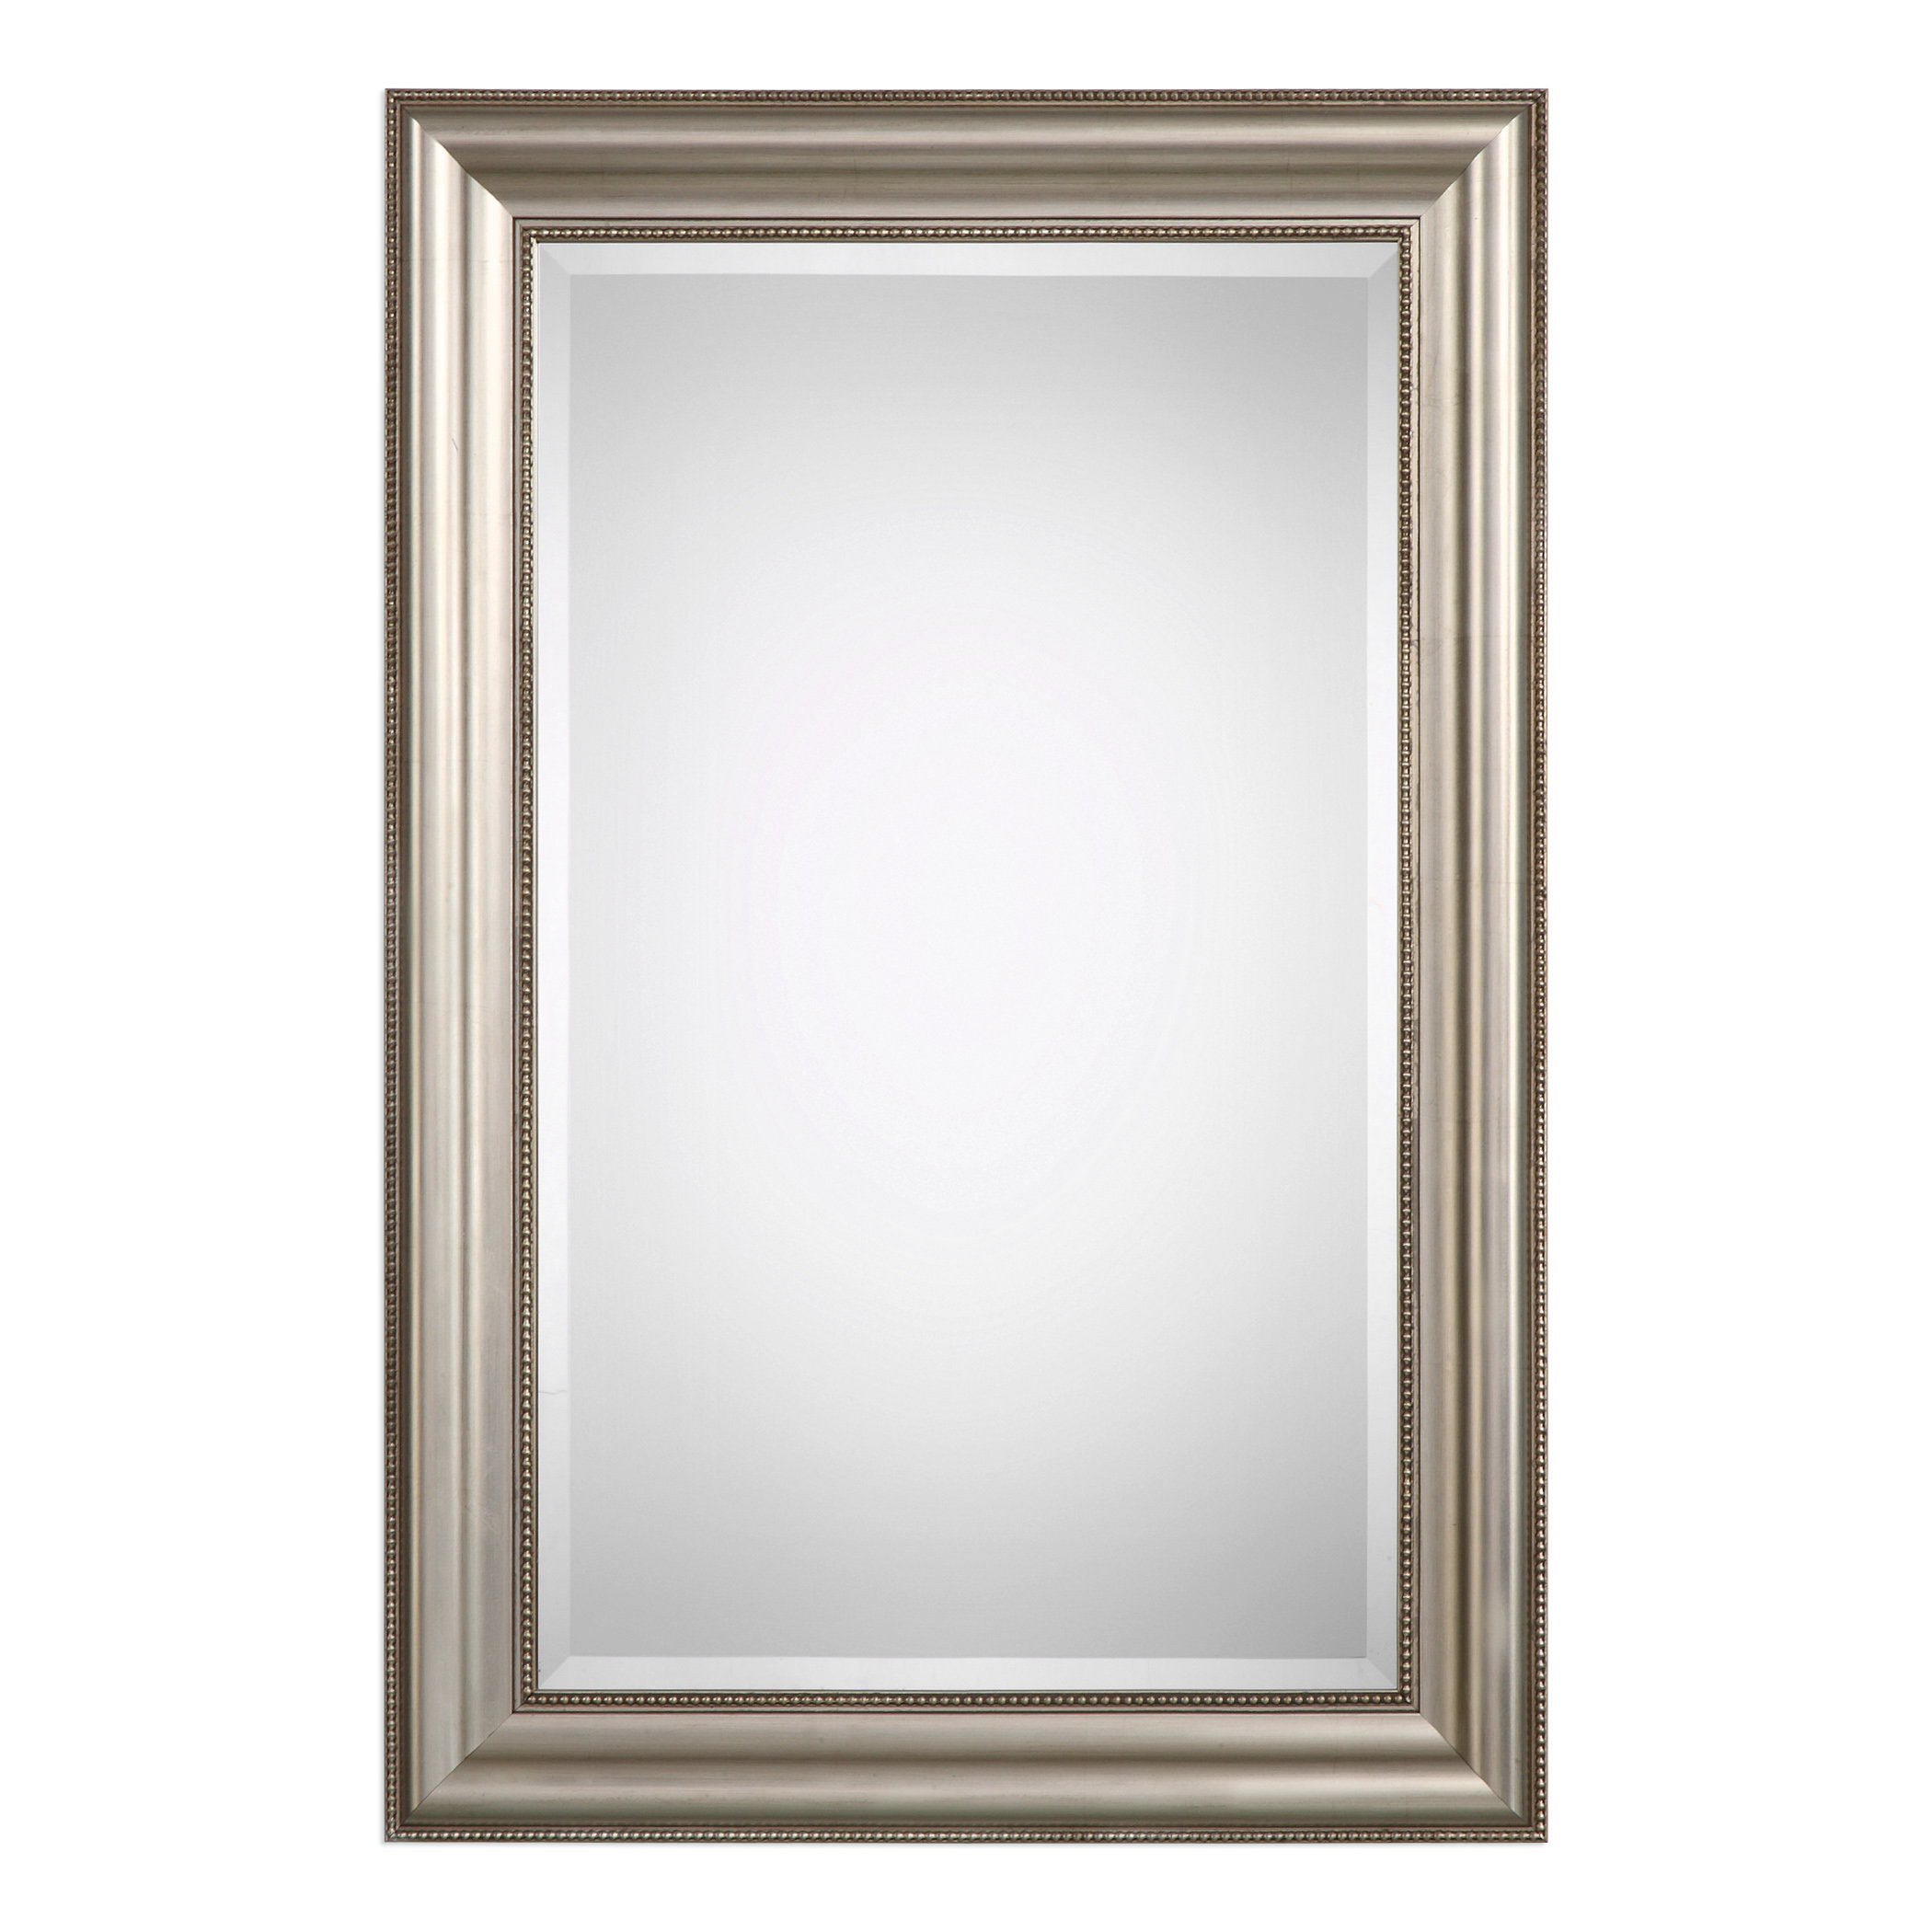 Farmhouse Mirrors | Birch Lane For Bem Decorative Wall Mirrors (View 24 of 30)